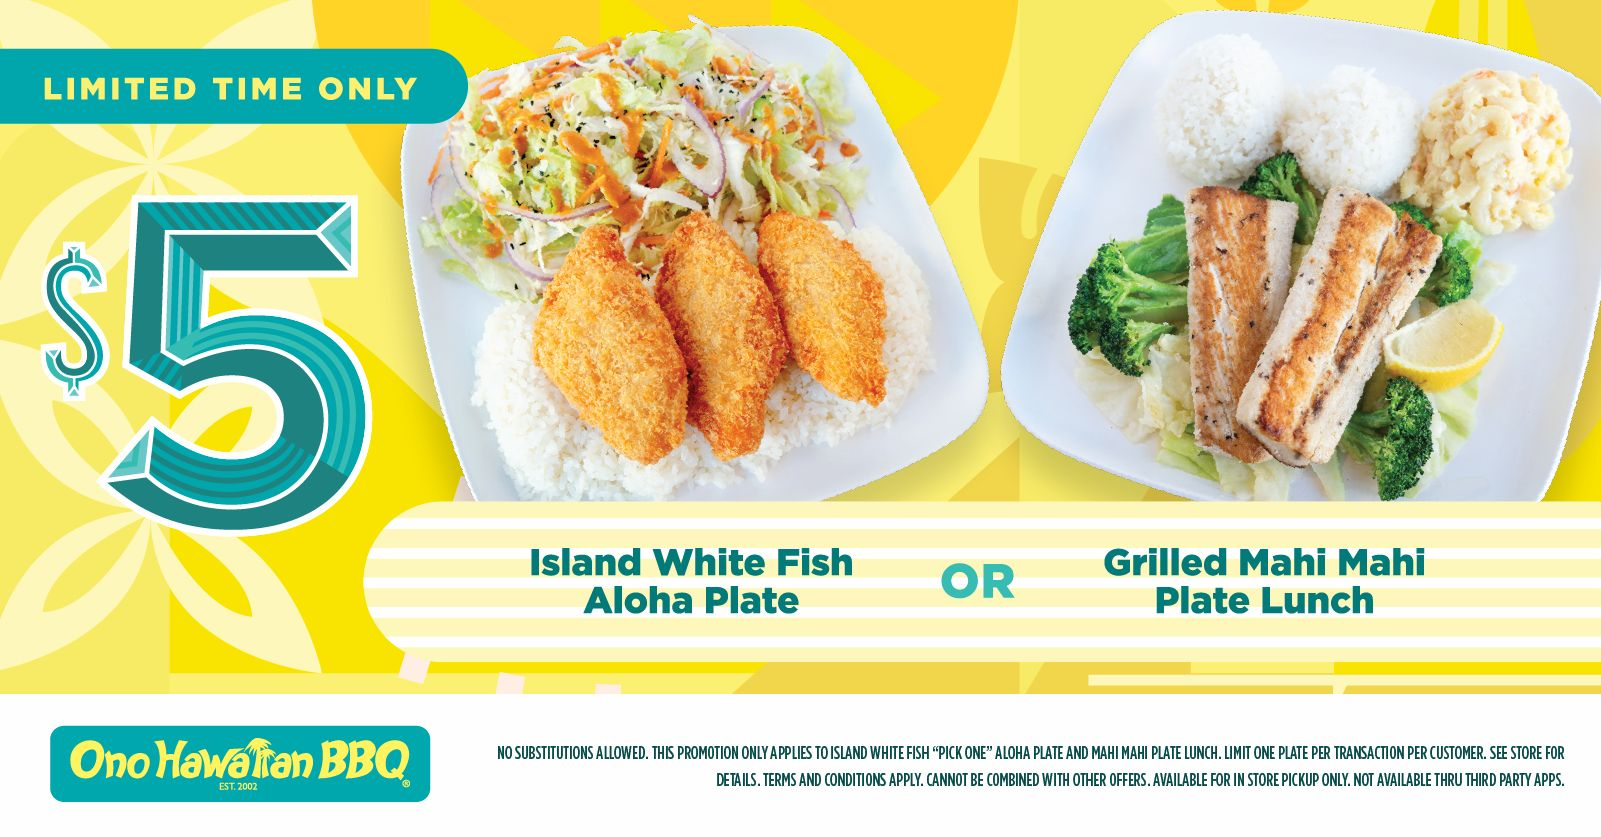 Ono Hawaiian BBQ Showcases a Taste of the Island With $5 Seafood Plate Specials